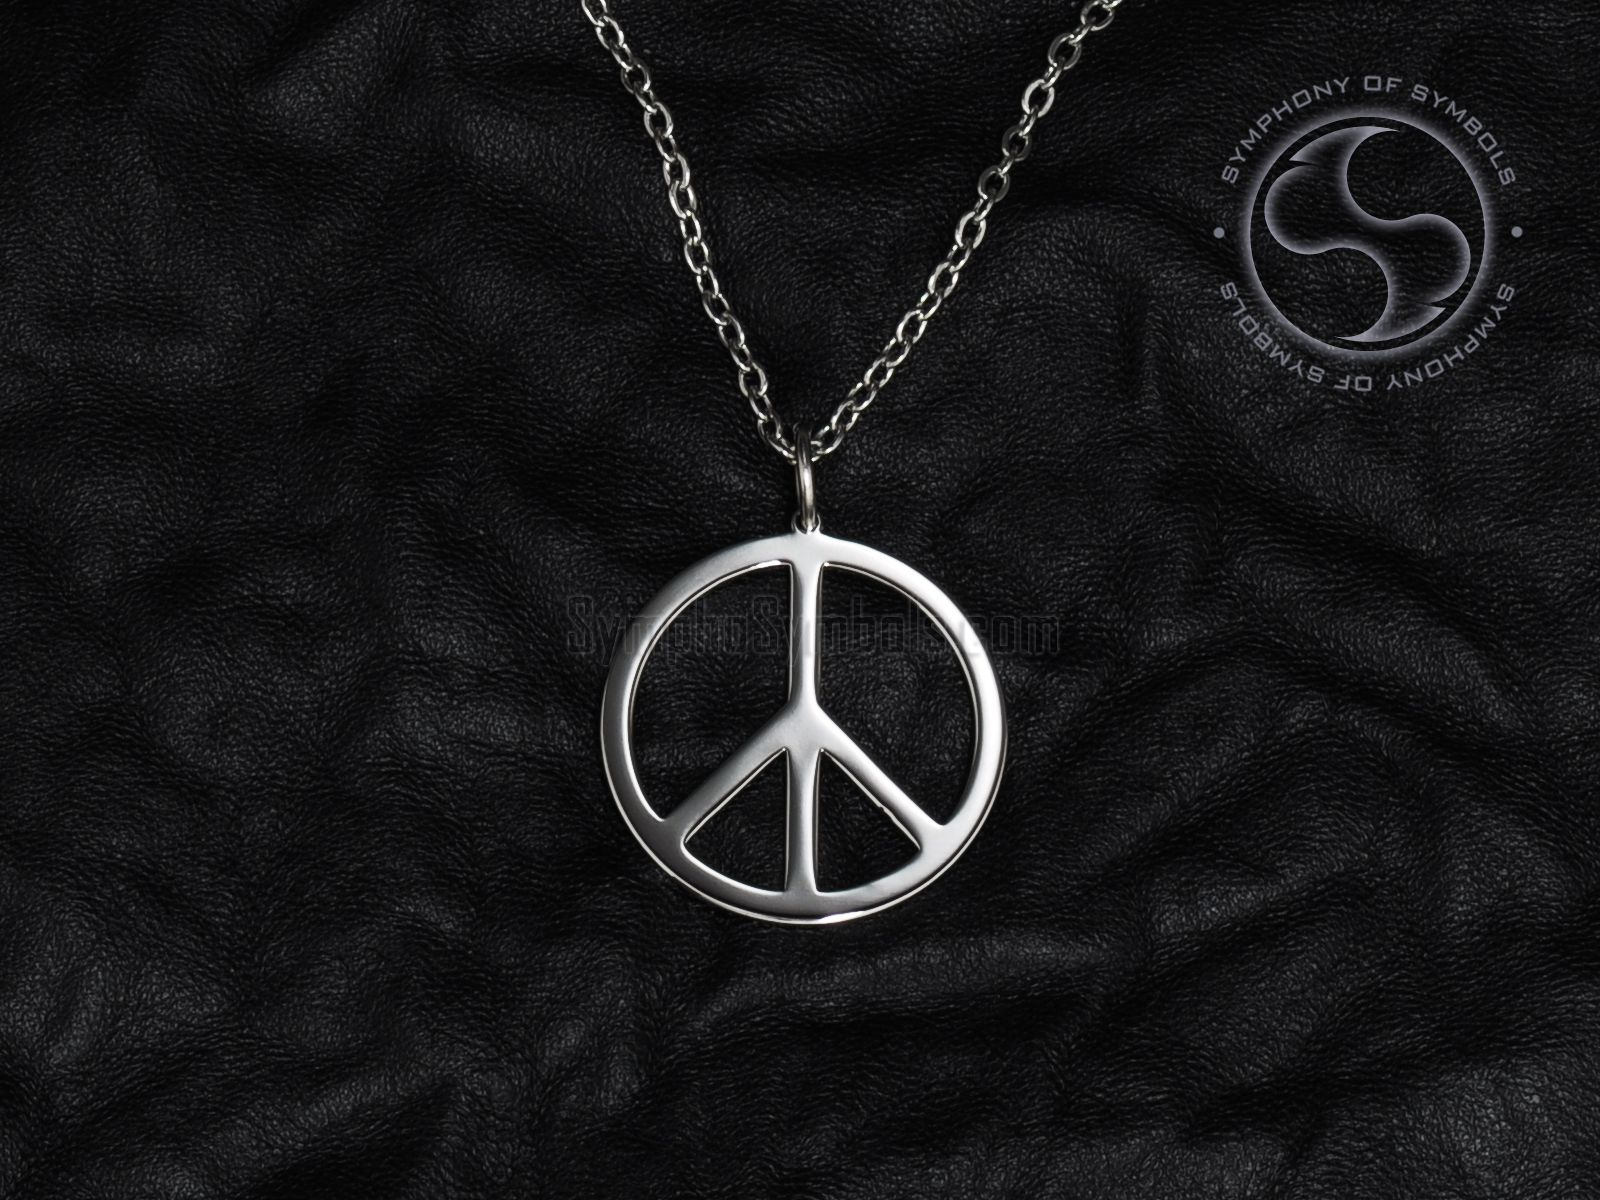 Peace symbol pendant stainless steel jewelry pacific necklace peace symbol pendant stainless steel jewelry pacific necklace pacifism keychain cnd logo nuclear disarmament emblem peace biocorpaavc Gallery